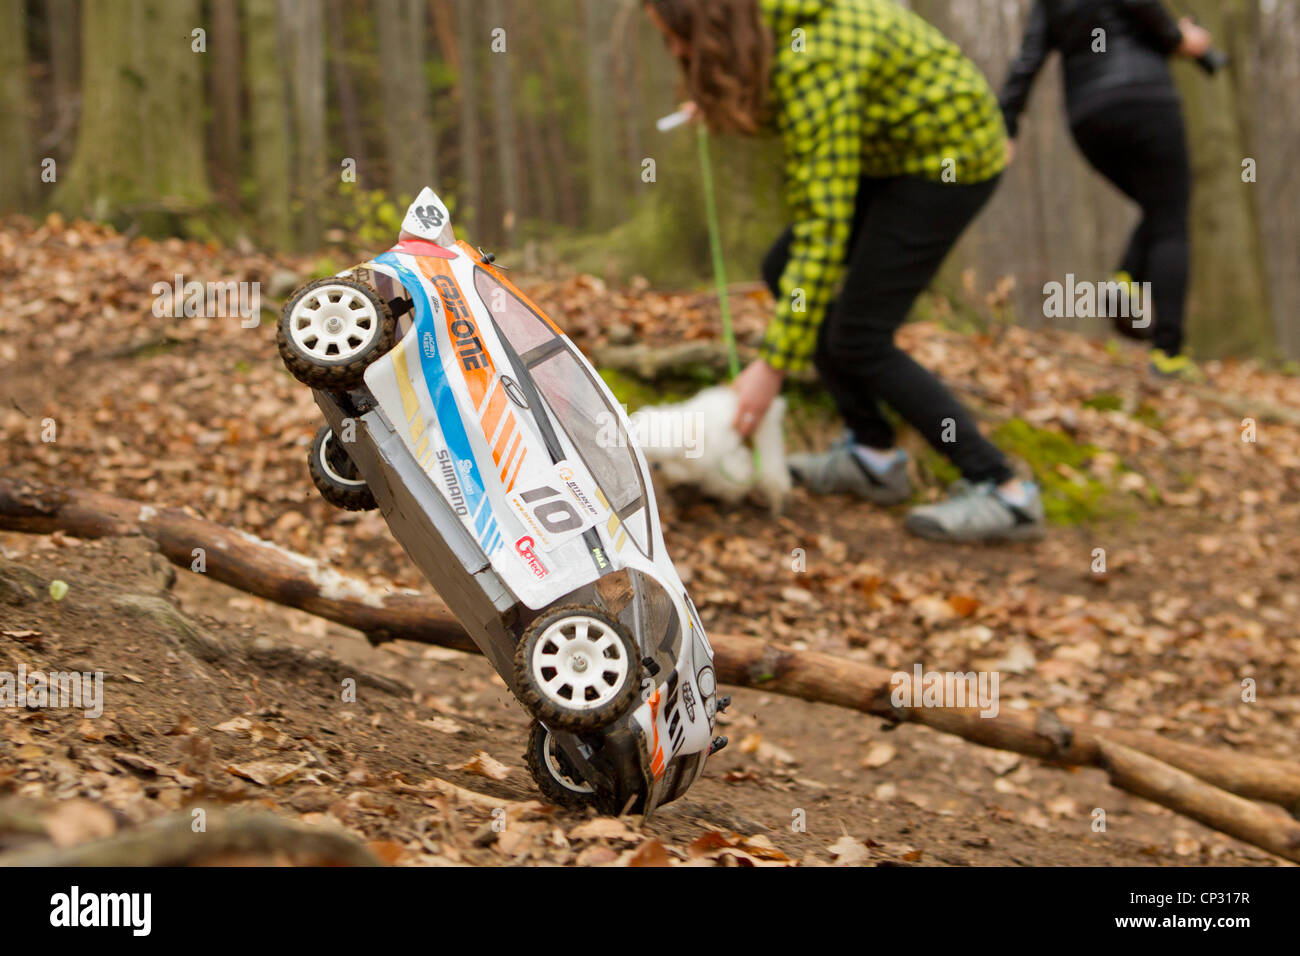 Stock Photo - race races RC car model toy rallye Ford Fiesta remote control controlled & race races RC car model toy rallye Ford Fiesta remote ... markmcfarlin.com